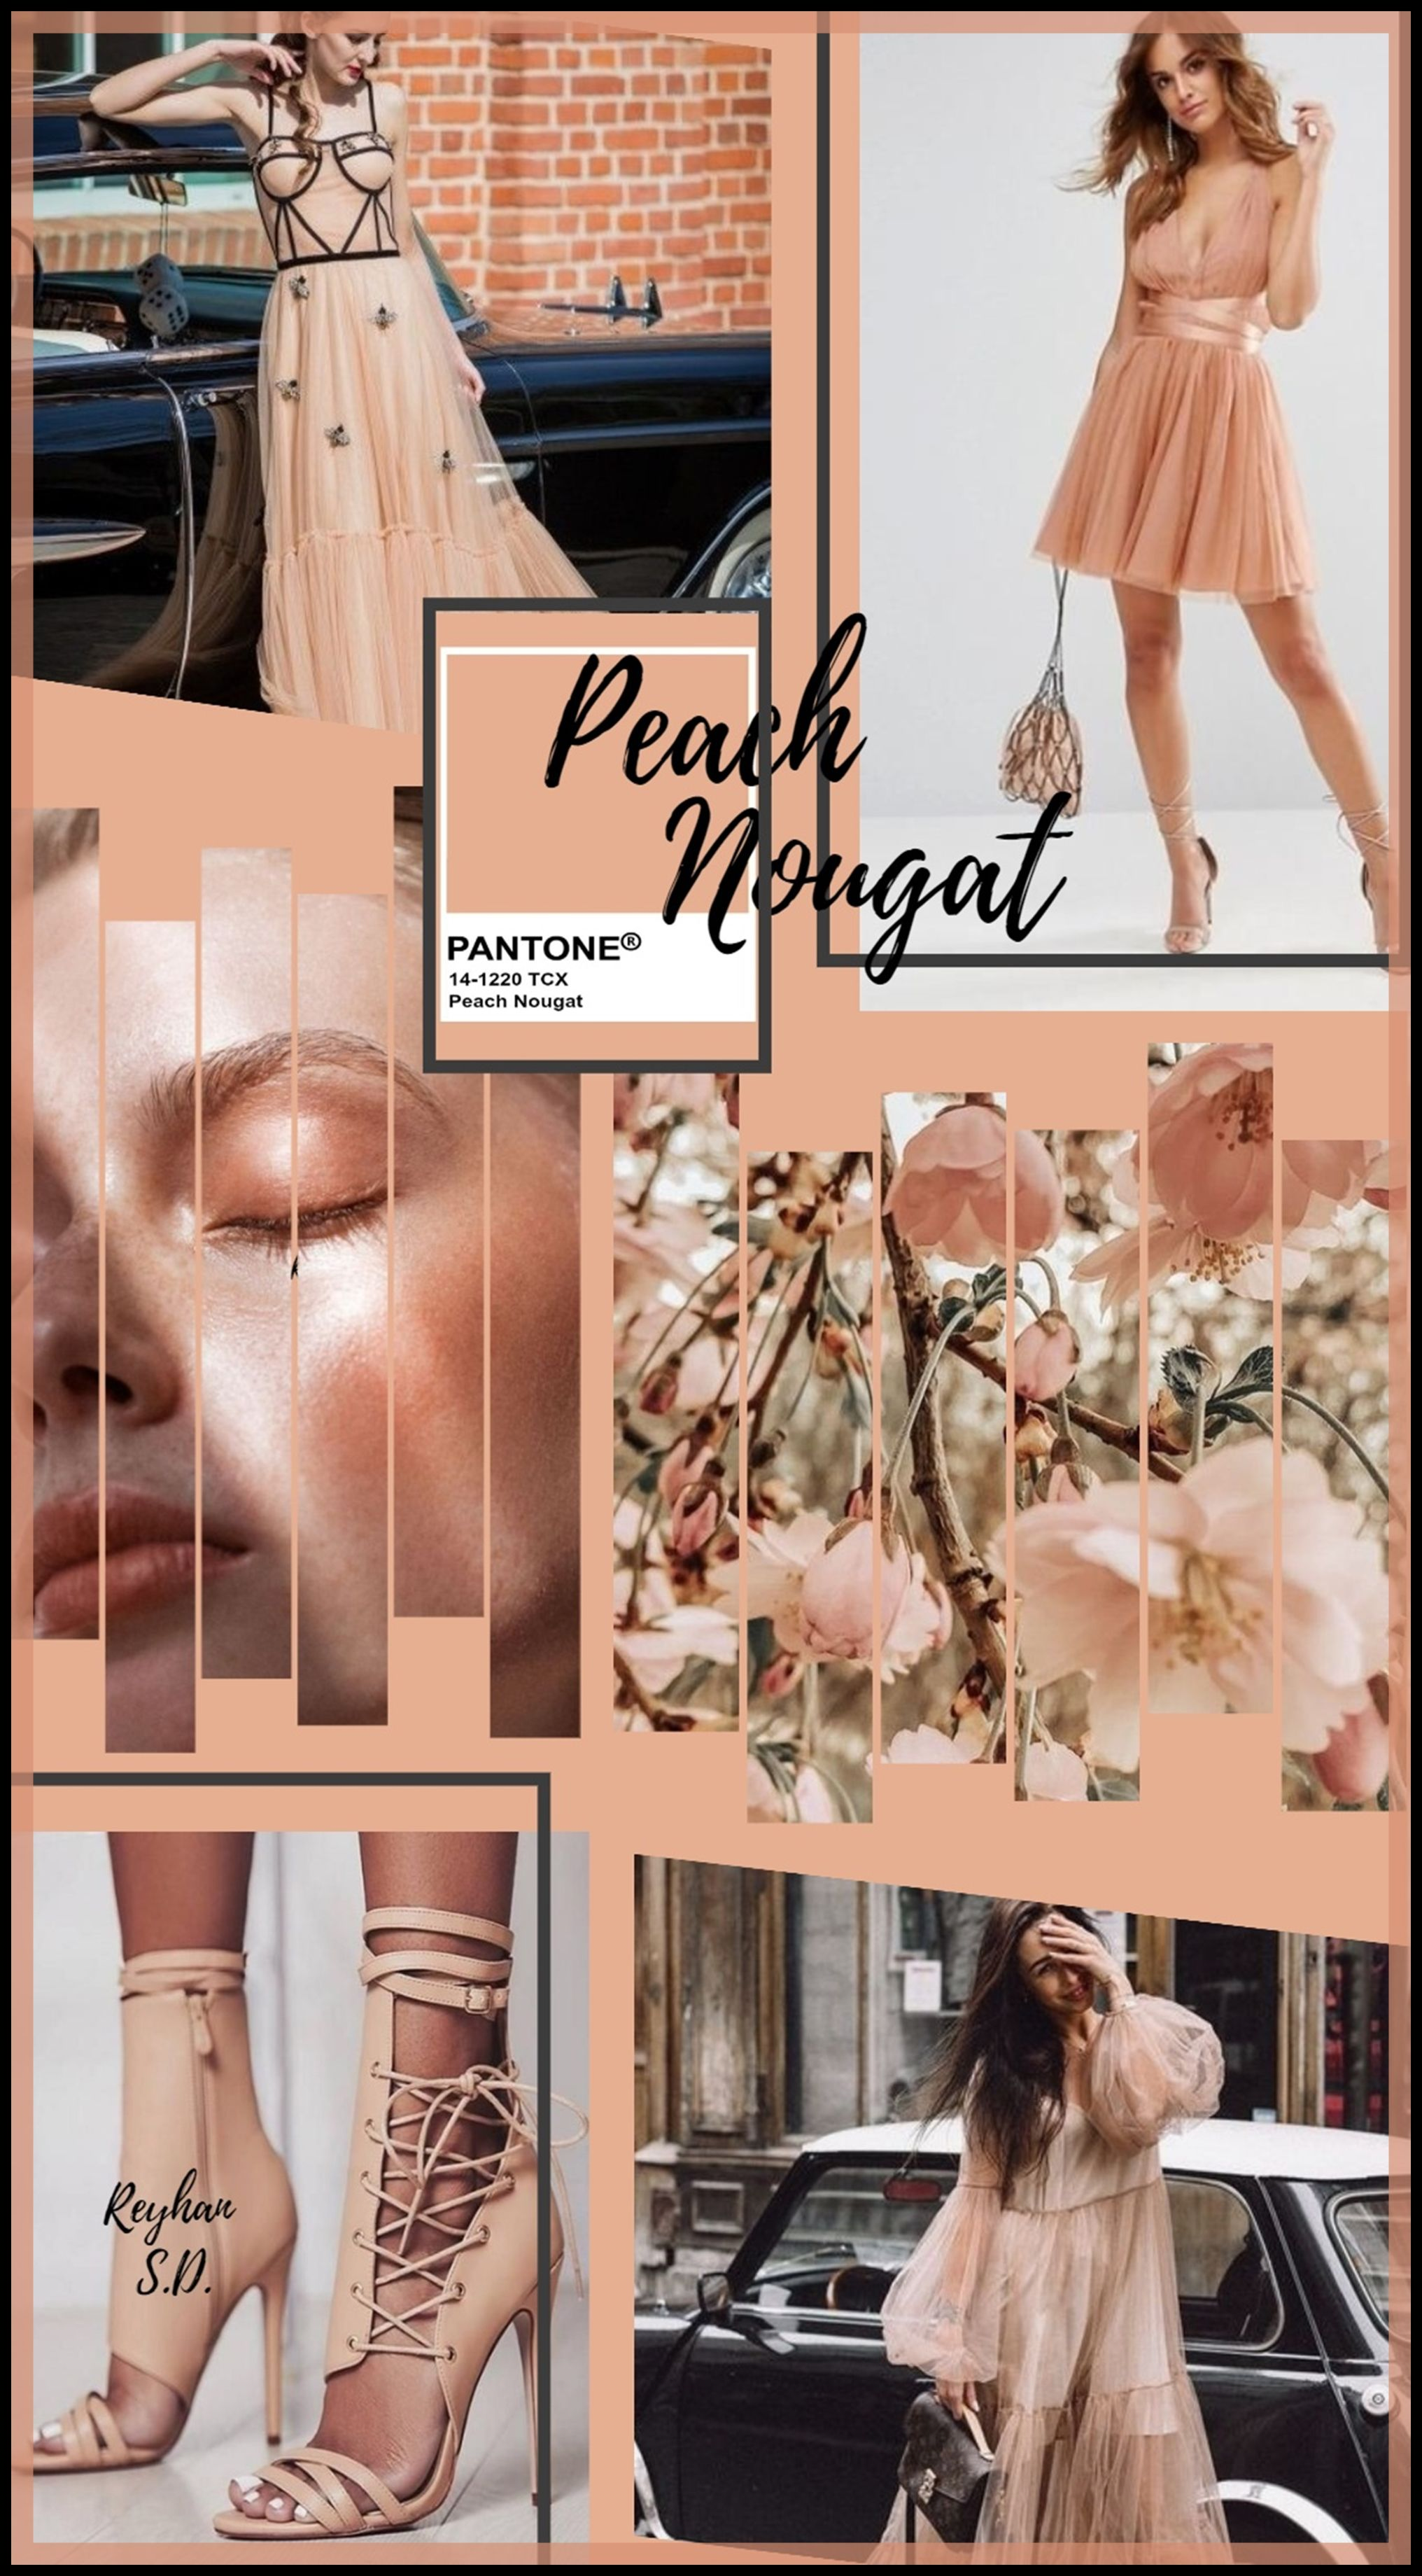 Peach Nougat Pantone Aw 2020 2021 Nyfw Color By Reyhan S D In 2020 Color Color Combinations Shades Of Orange